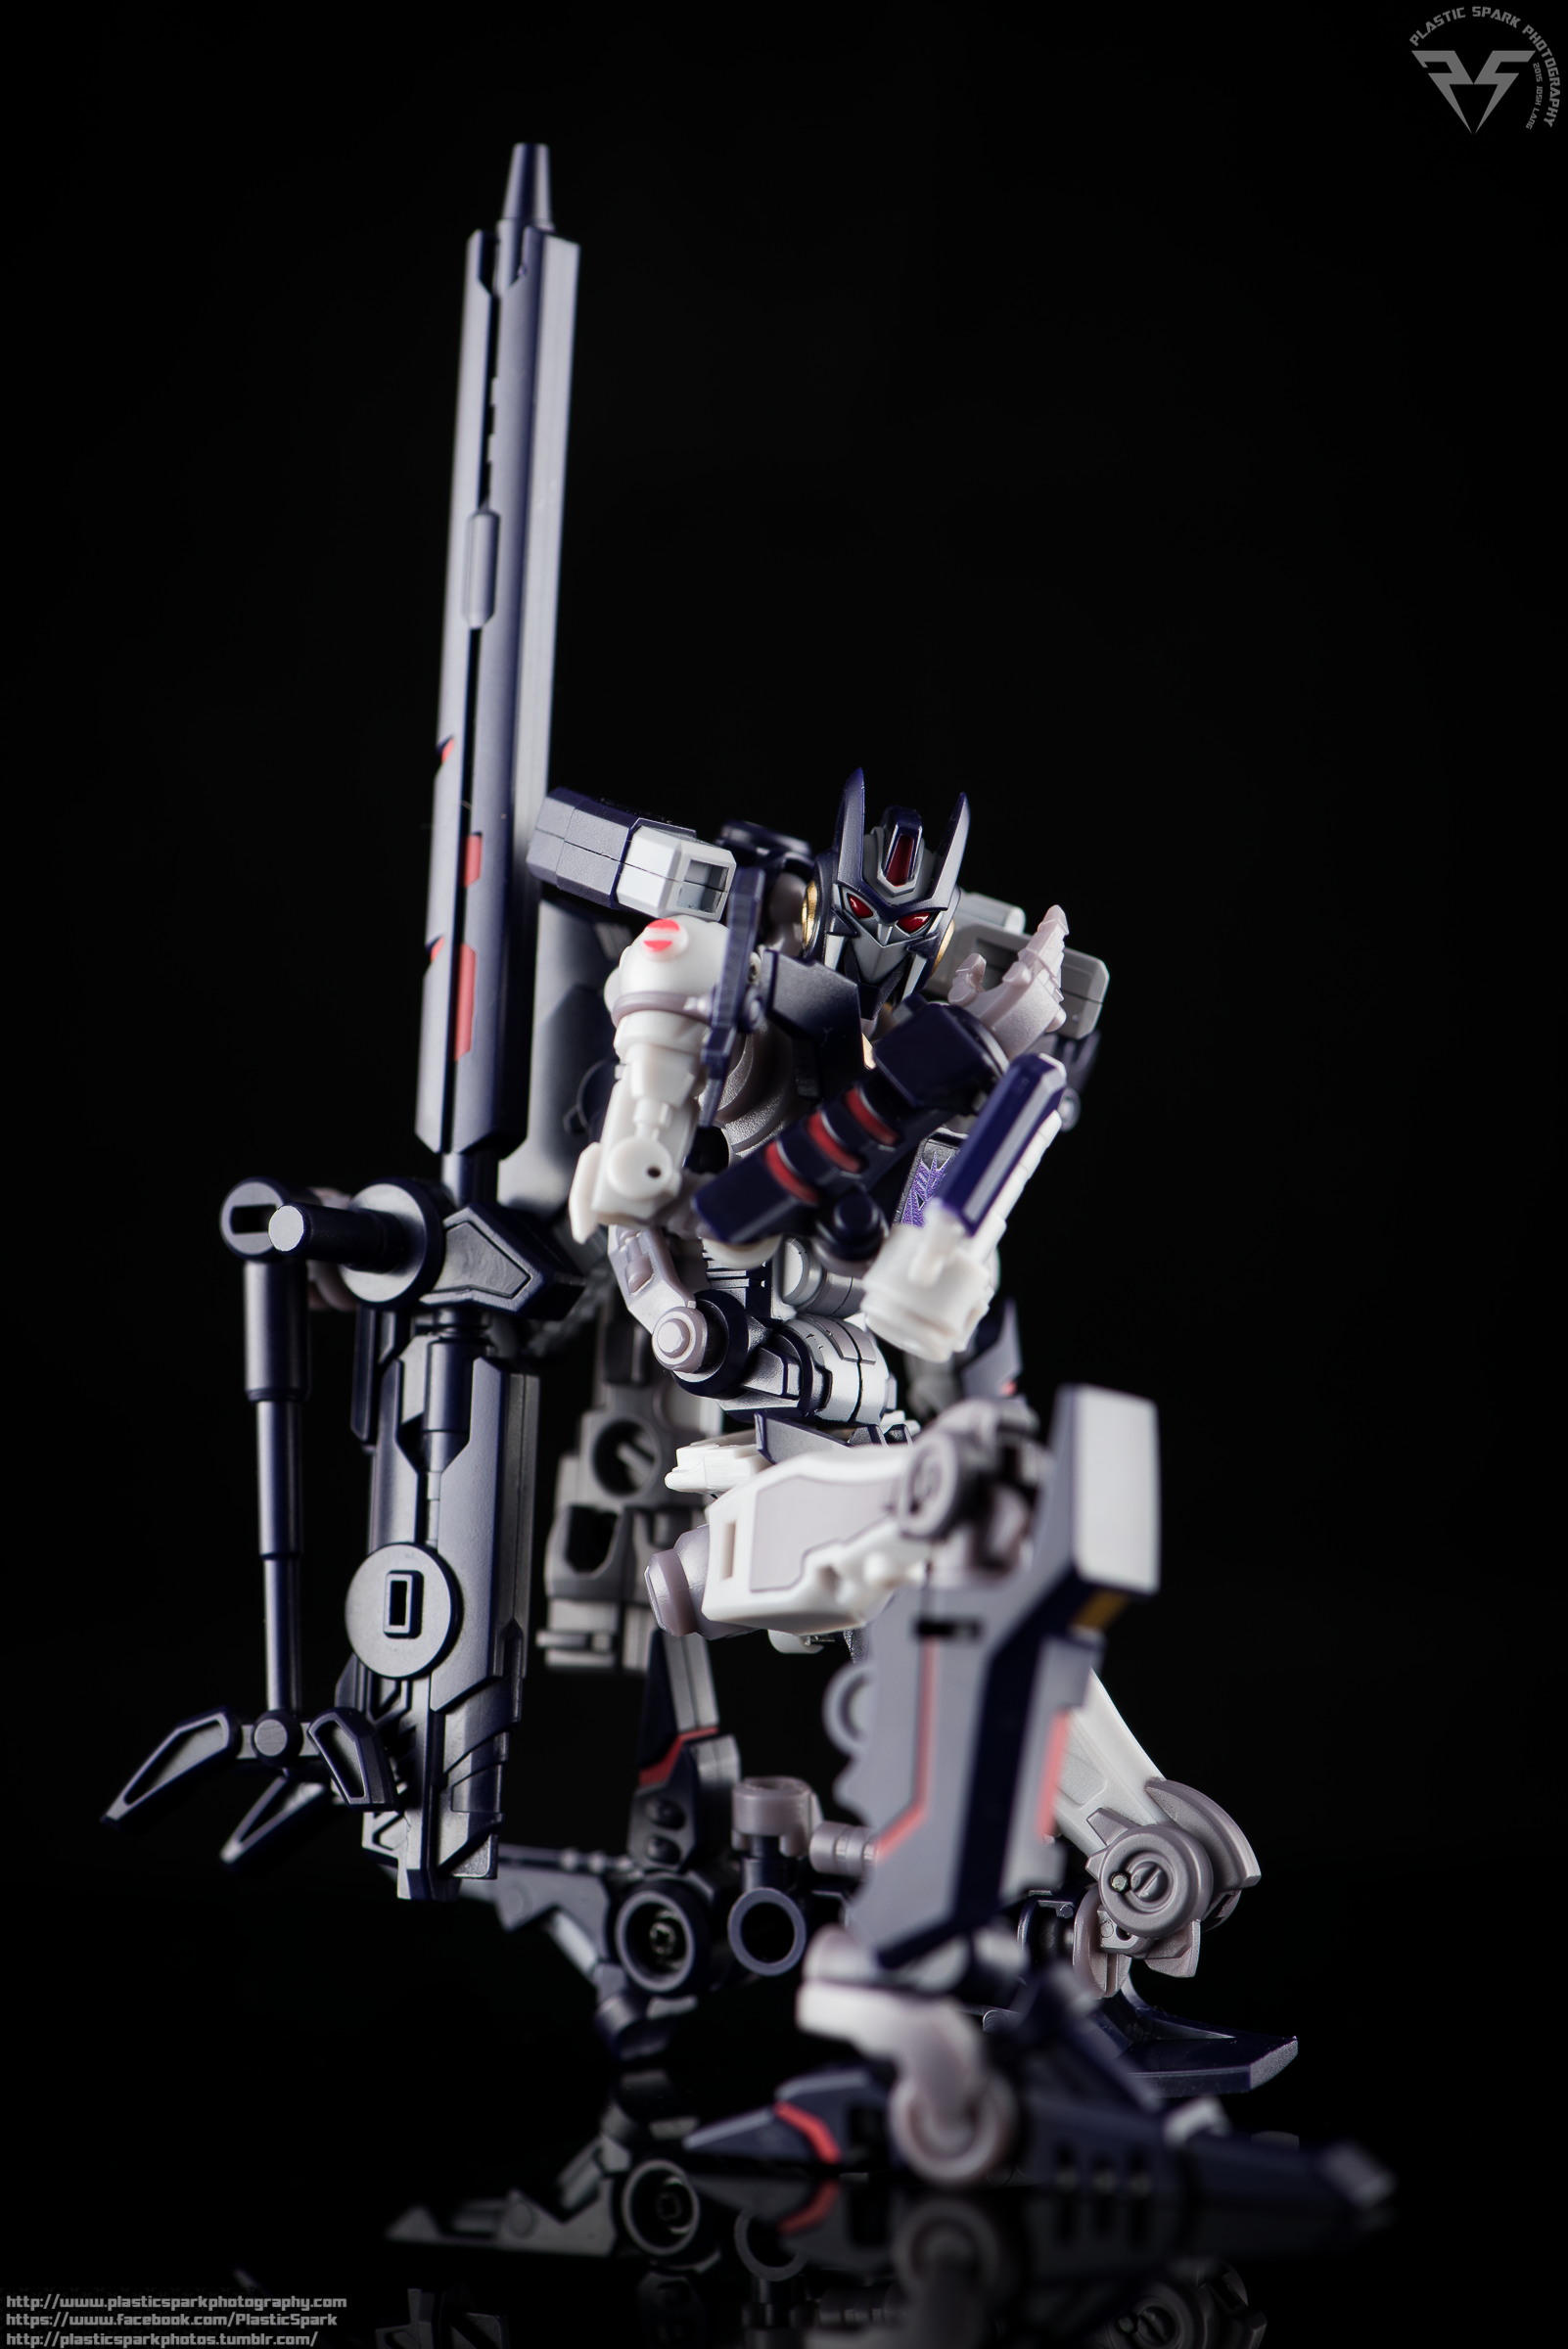 Mastermind-Creations-Cynicus-(3-of-21).png